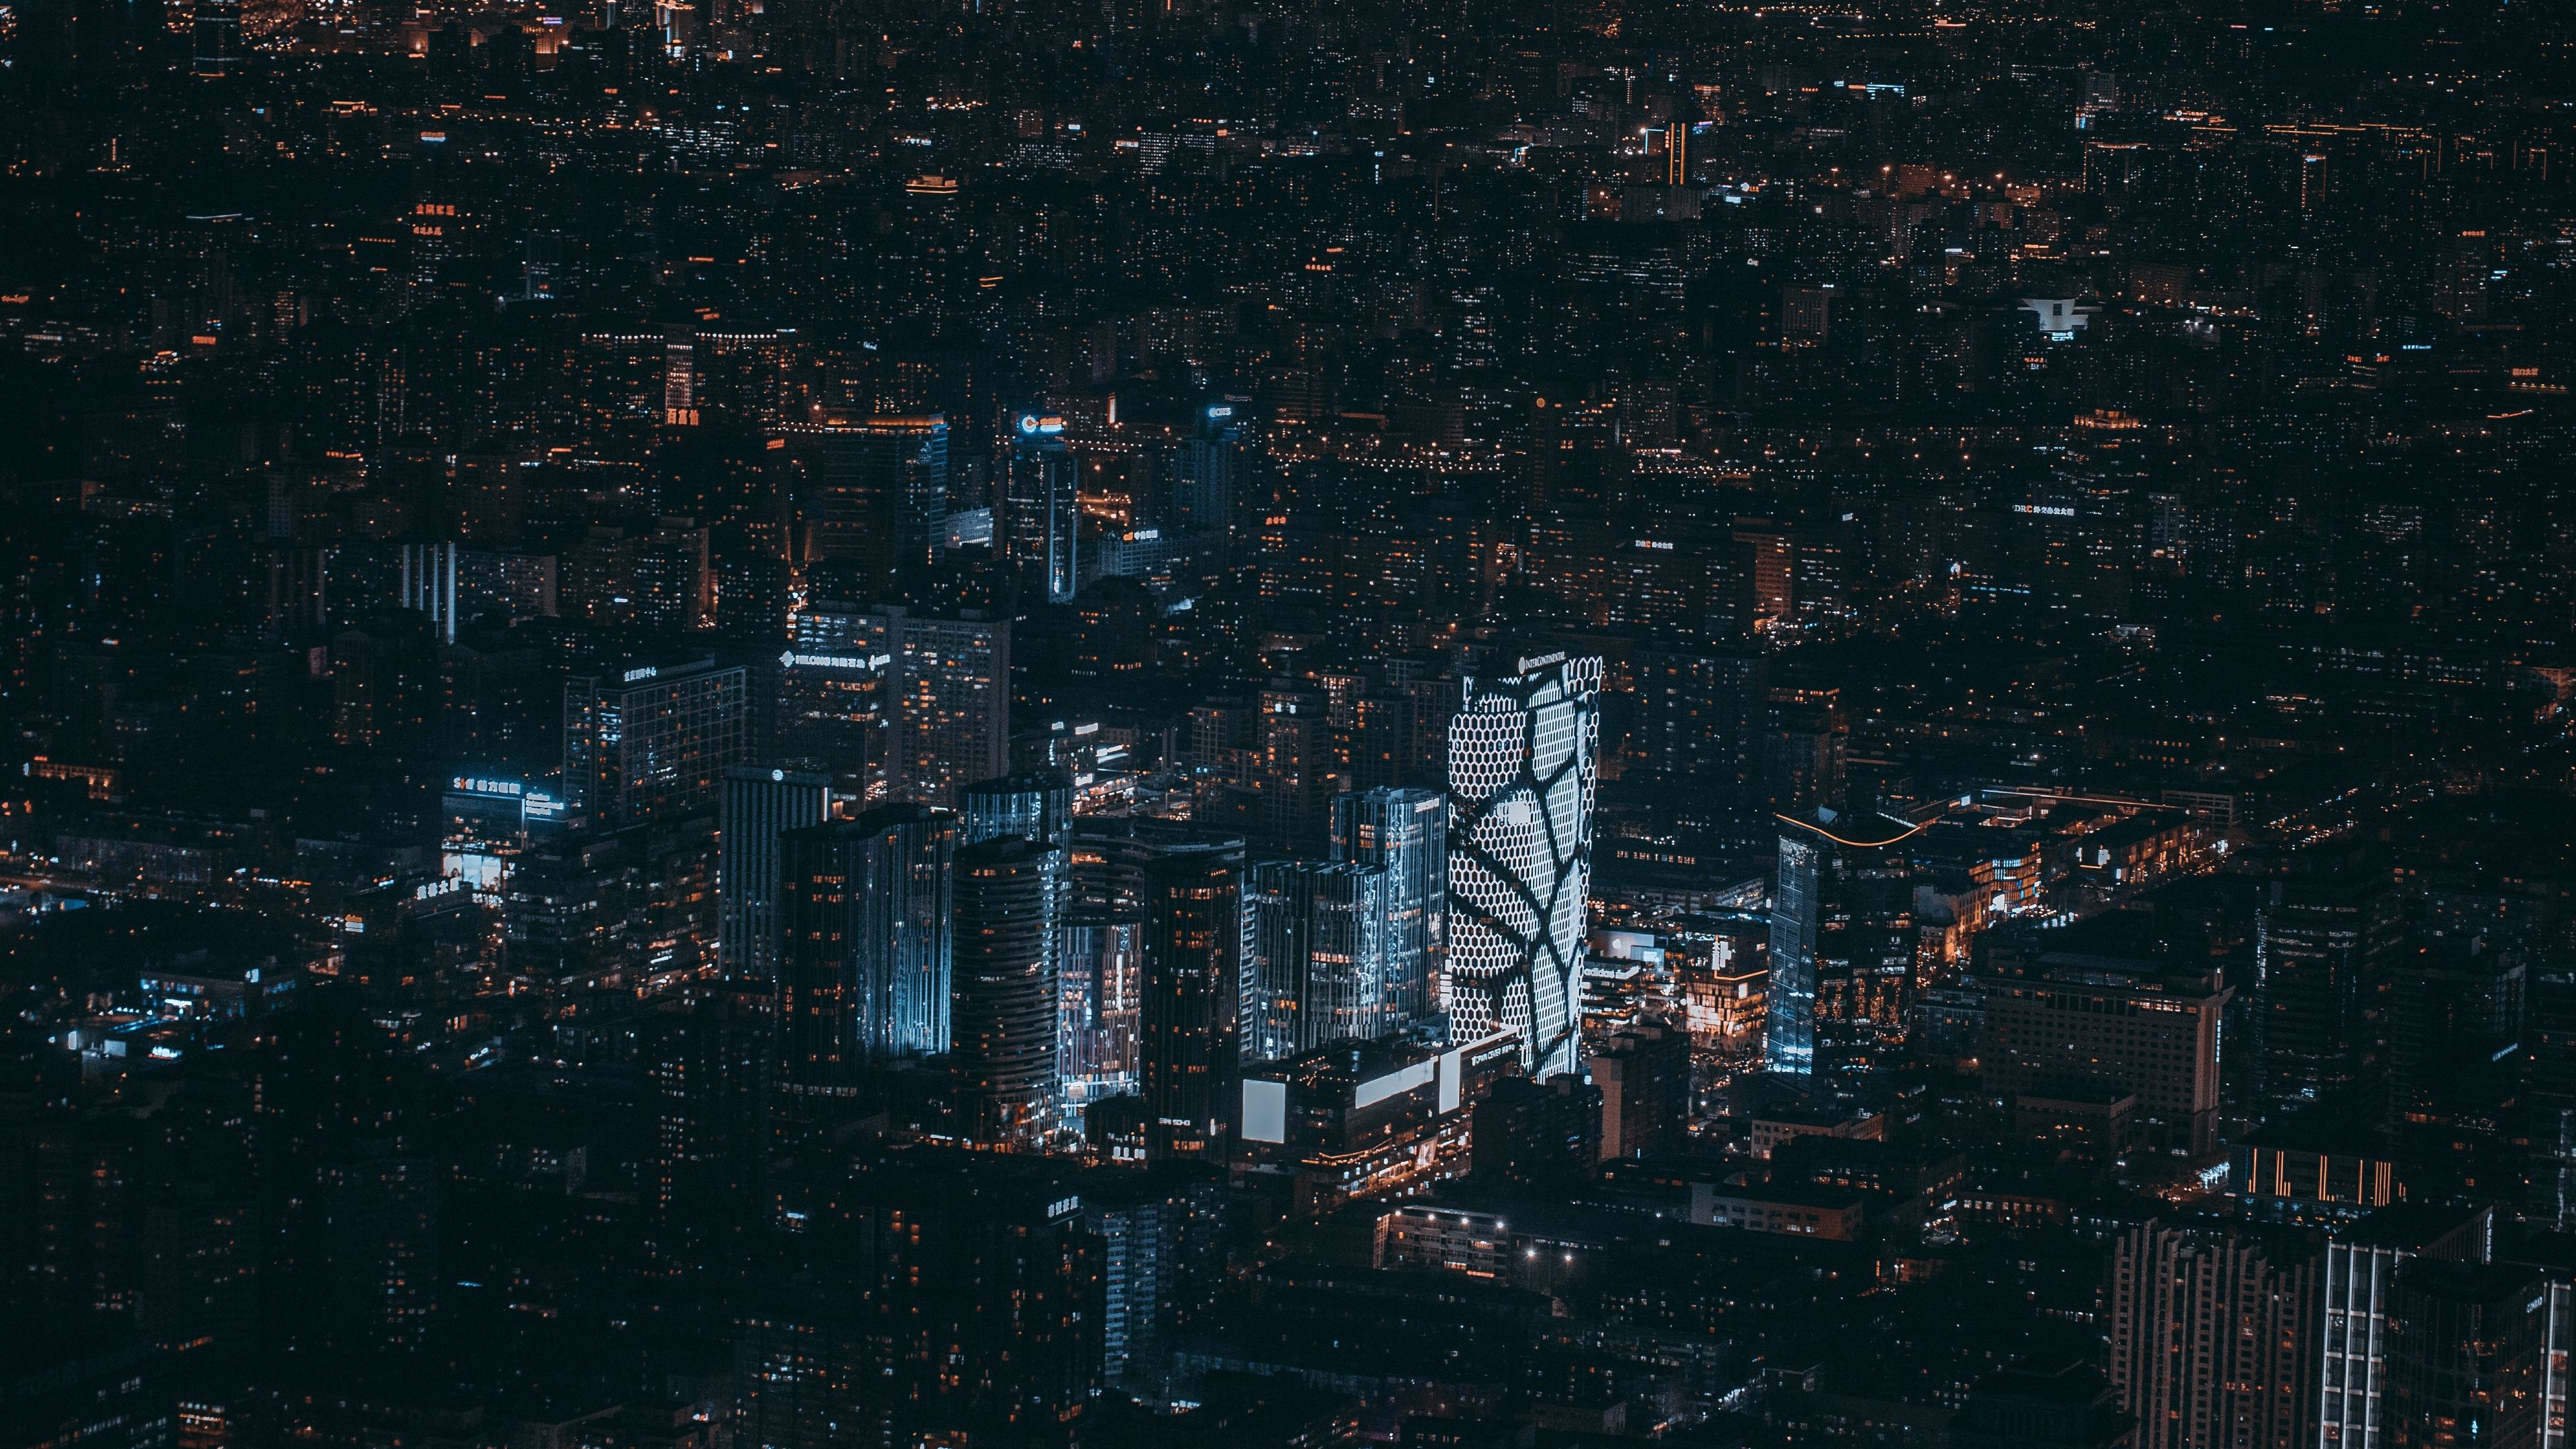 beijing china night city view from above skyscrapers 4k 1538068831 - beijing, china, night city, view from above, skyscrapers 4k - night city, China, Beijing